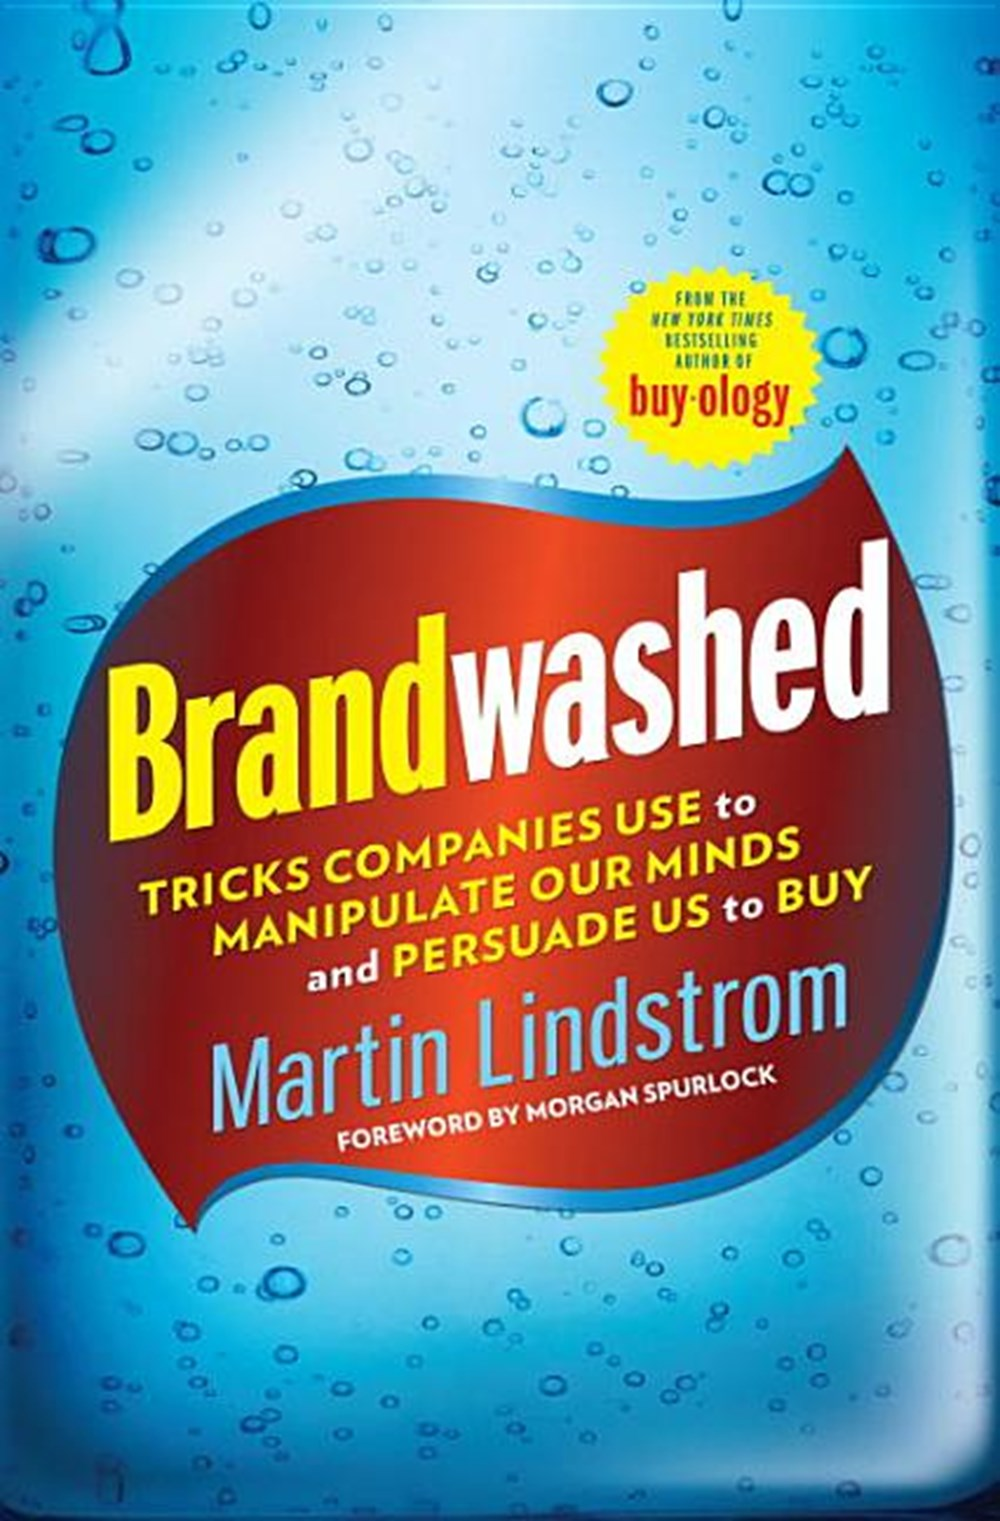 Brandwashed Tricks Companies Use to Manipulate Our Minds and Persuade Us to Buy